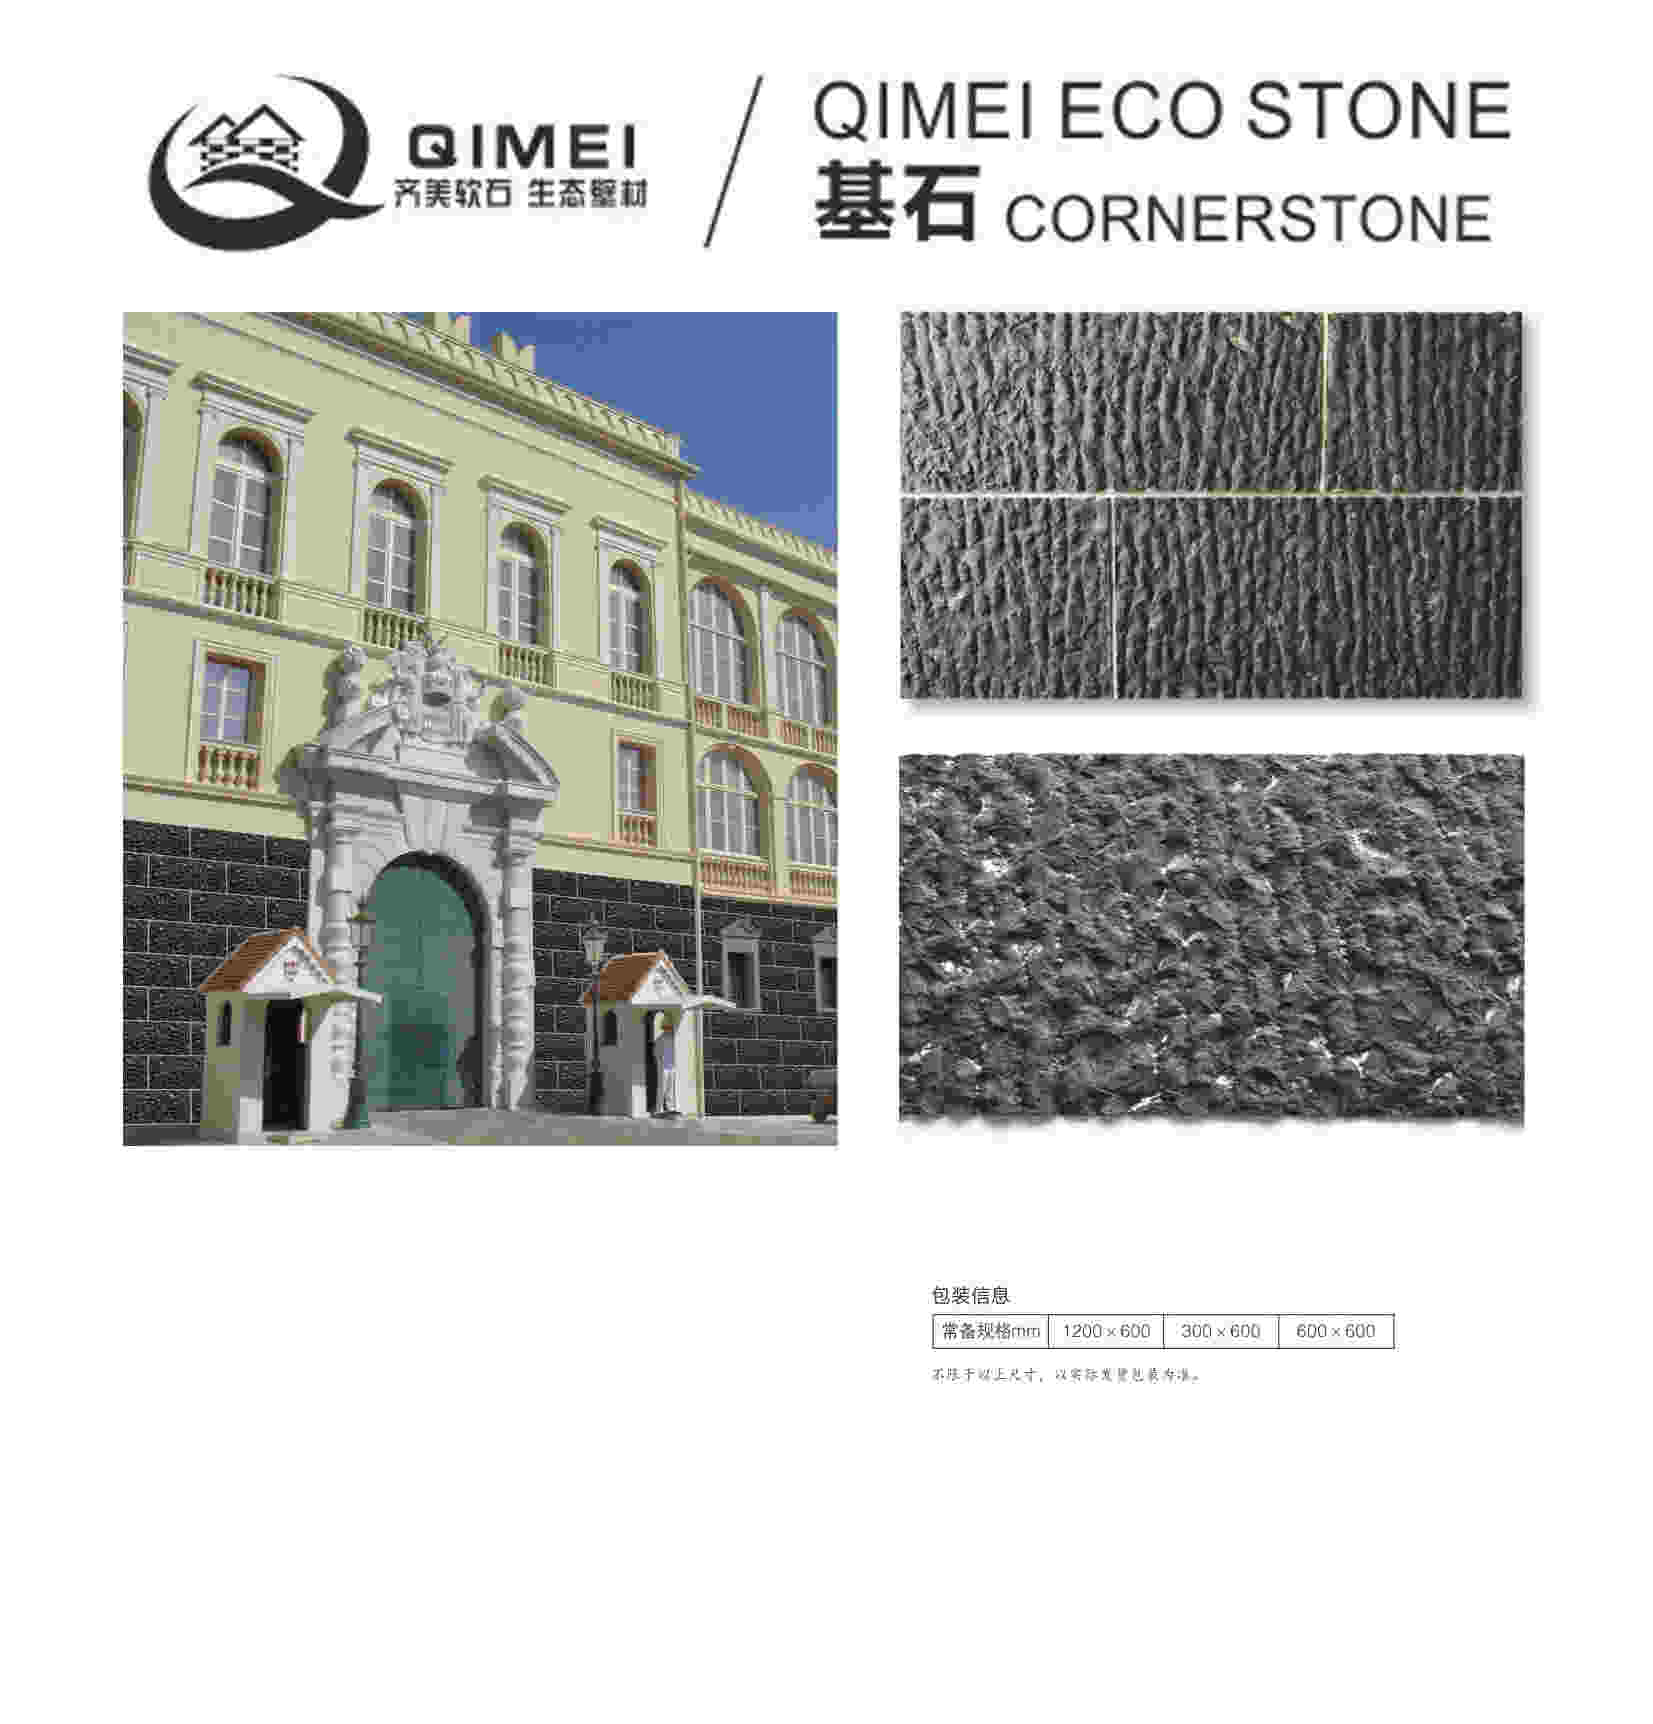 CHINA Jiangsu baidai light weight and safety stone artificial natural stone pattern/texture